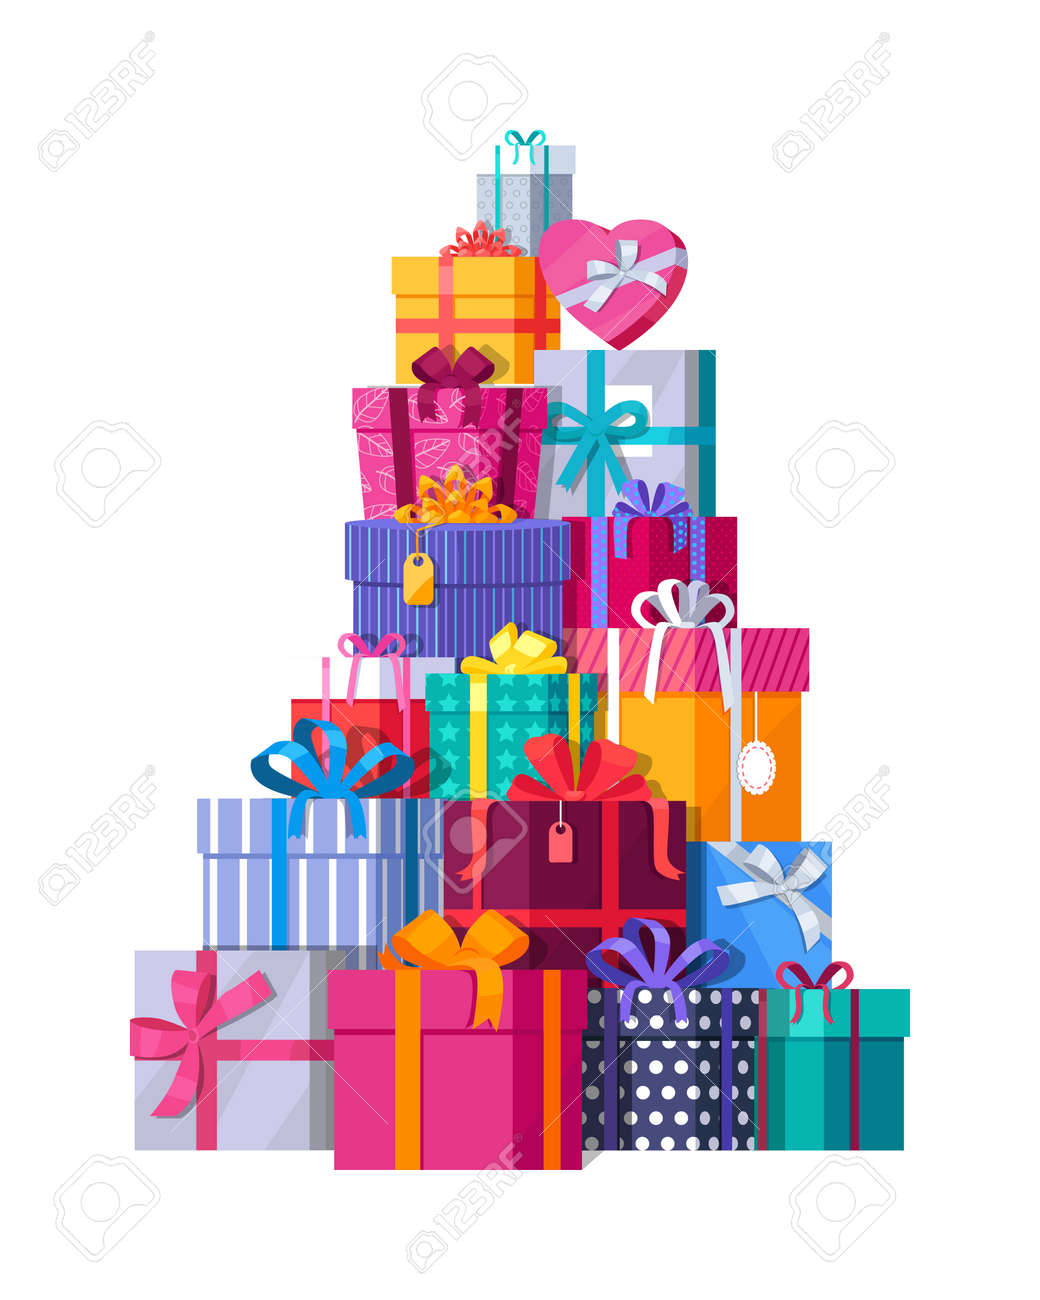 Mountain of colorful gift boxes on white background big stack of mountain of colorful gift boxes on white background big stack of christmas presents decorative negle